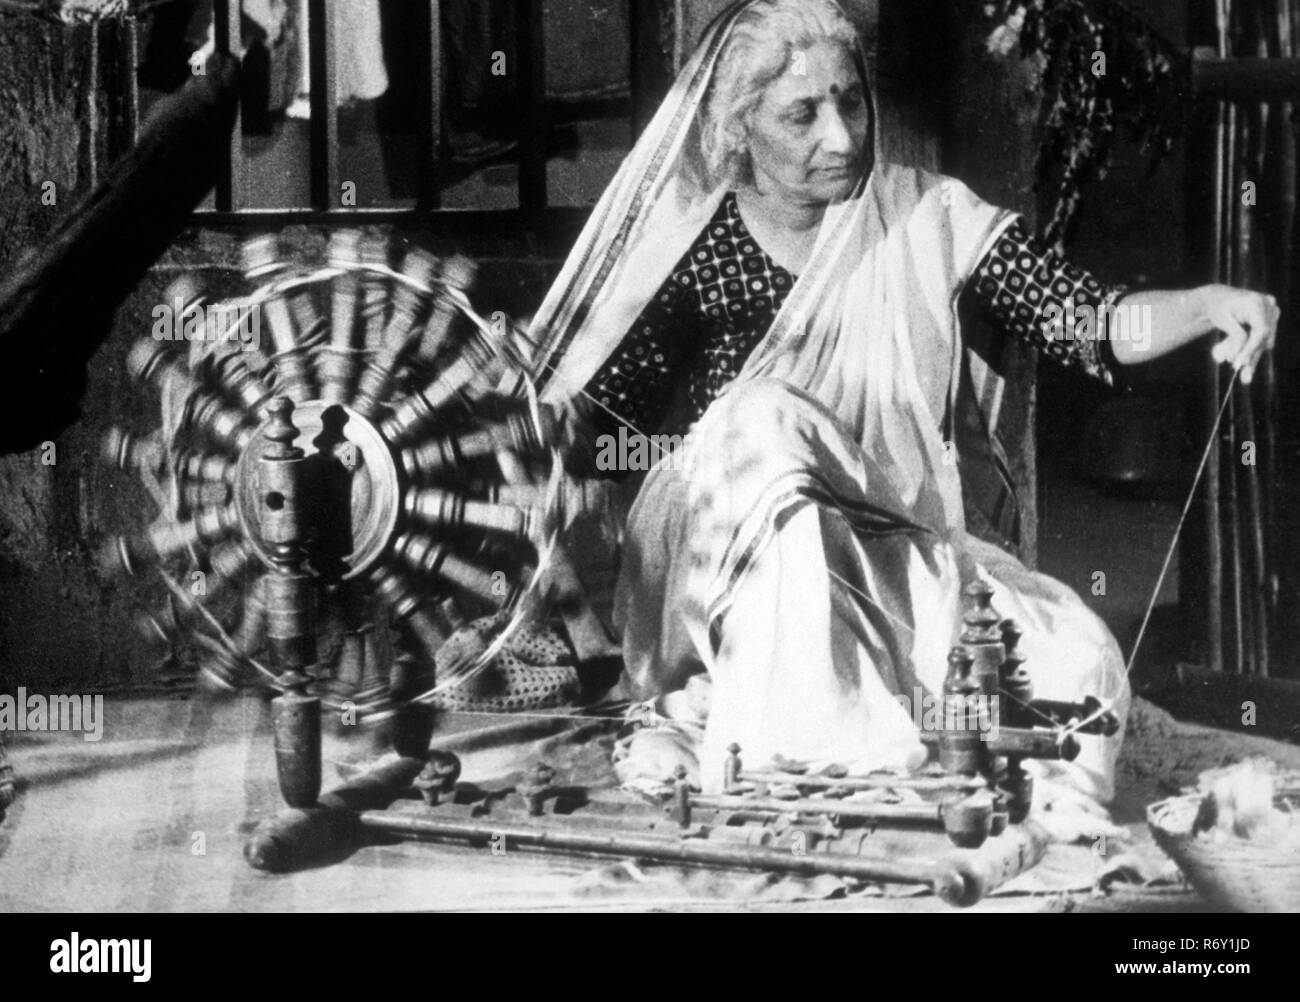 woman weaving on spinning wheel, NO MR (1119) - Stock Image